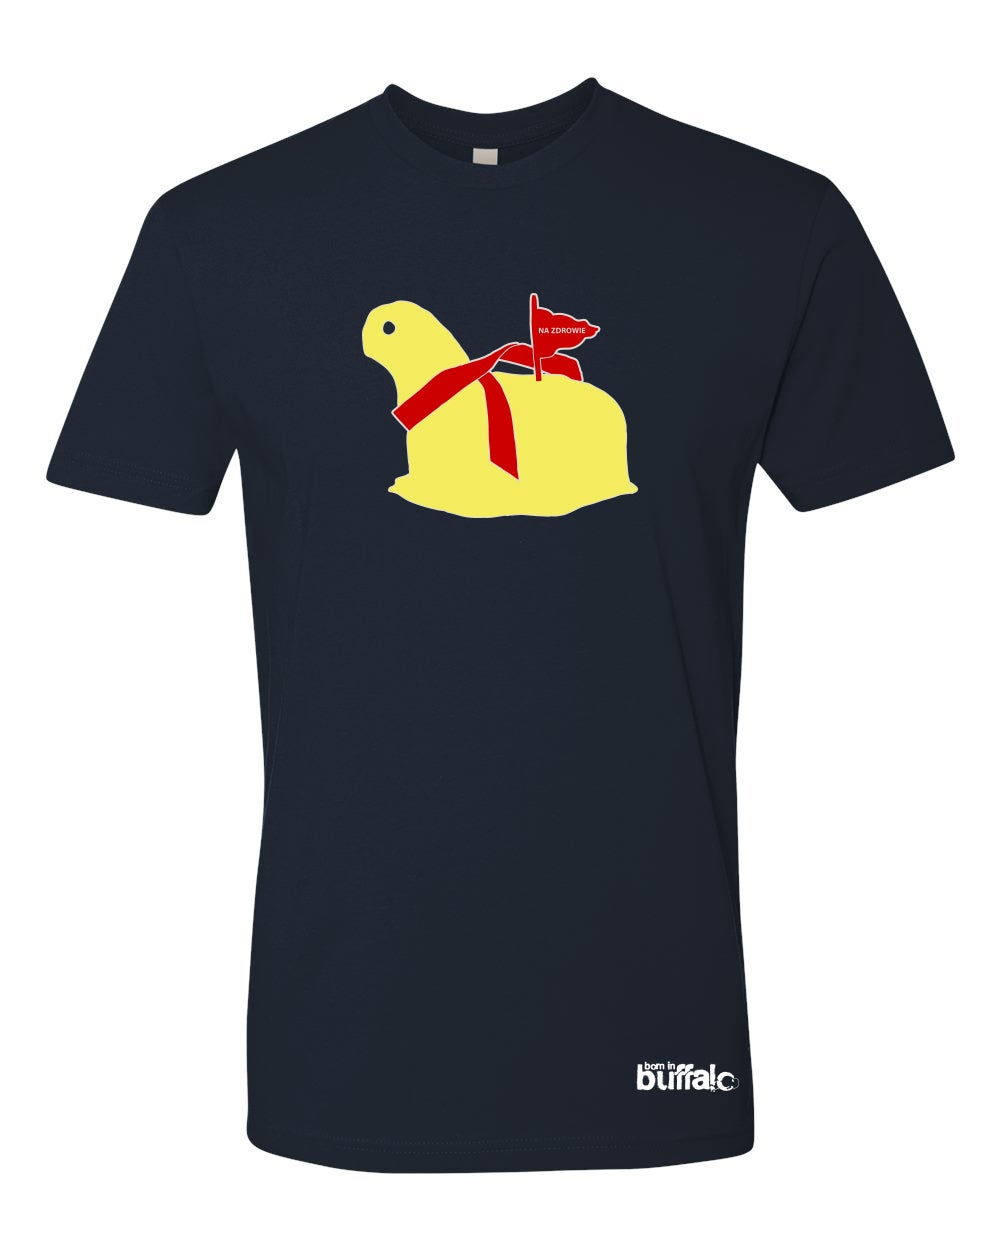 Image of Butter Lamb - NAVY BLUE